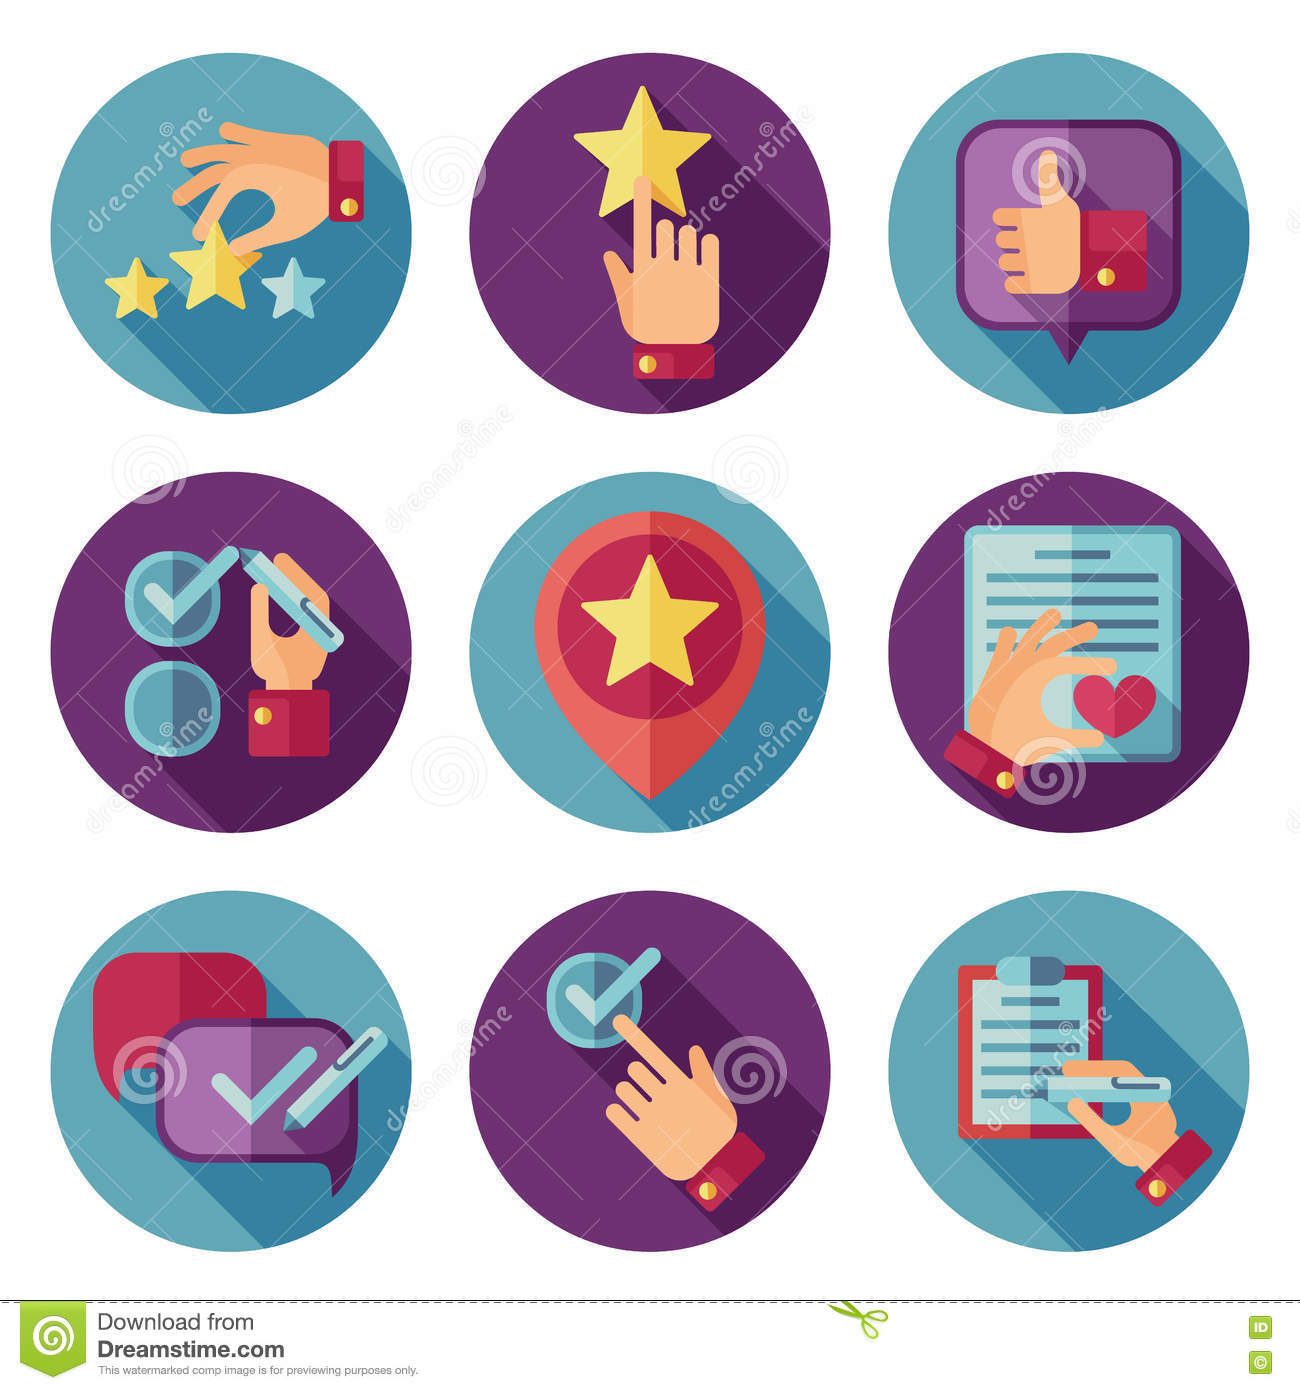 Customer Service Flat Vector Icons Set Stock Vector - Image: 73219260